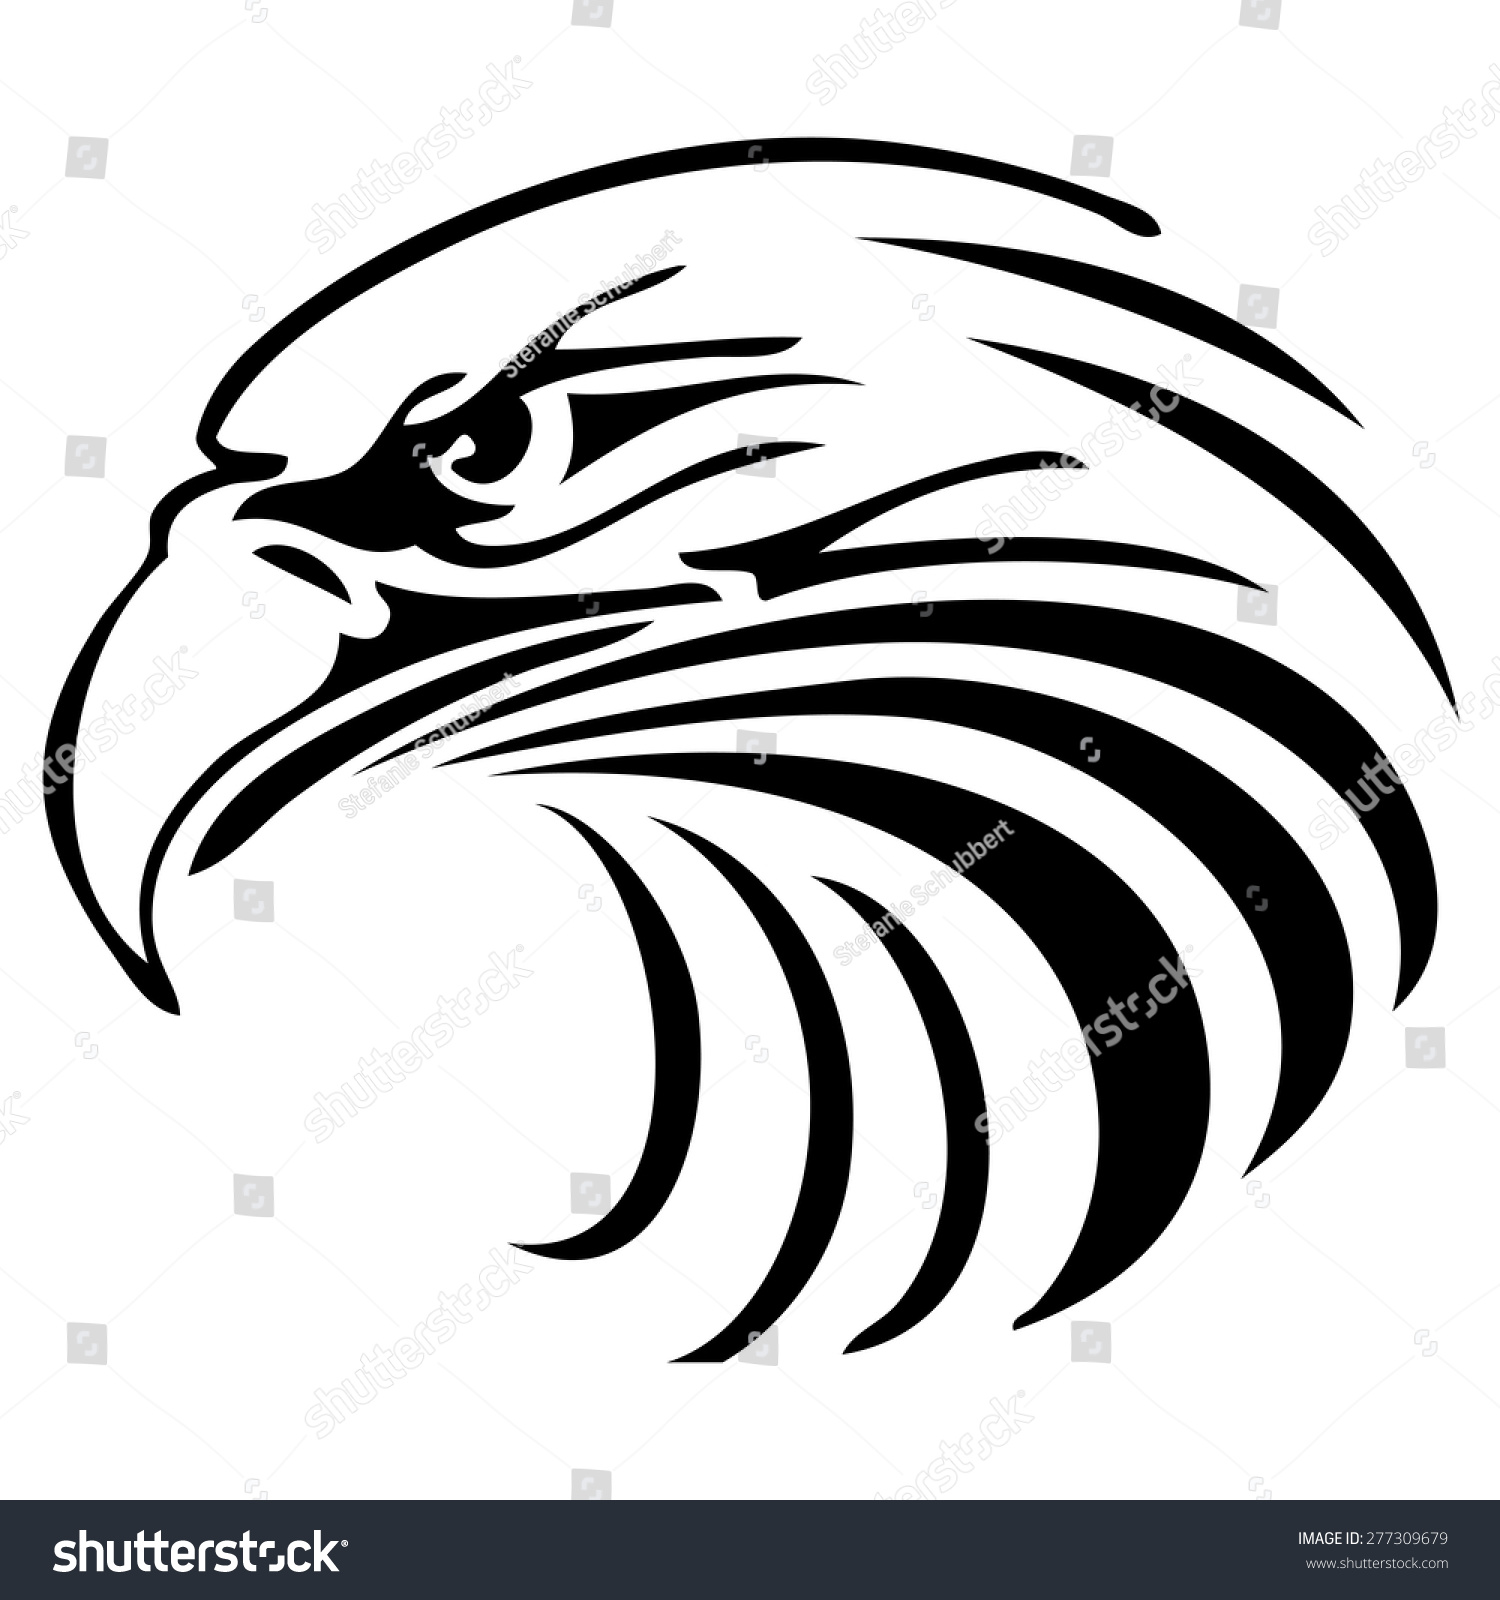 Eagle head logo black and white - photo#6